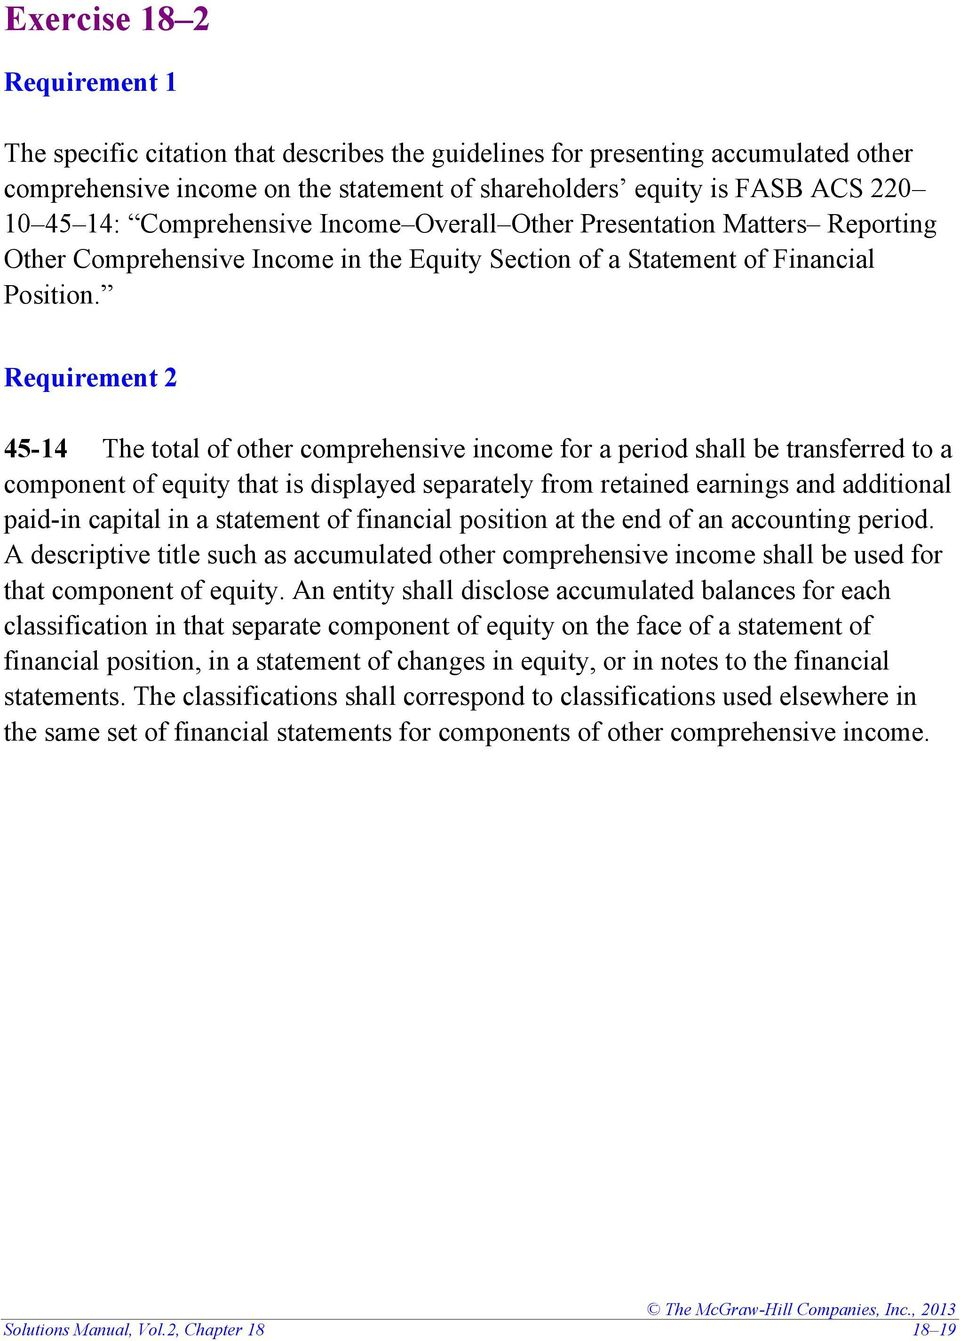 Requirement 2 45-14 The total of other comprehensive income for a period shall be transferred to a component of equity that is displayed separately from retained earnings and additional paid-in